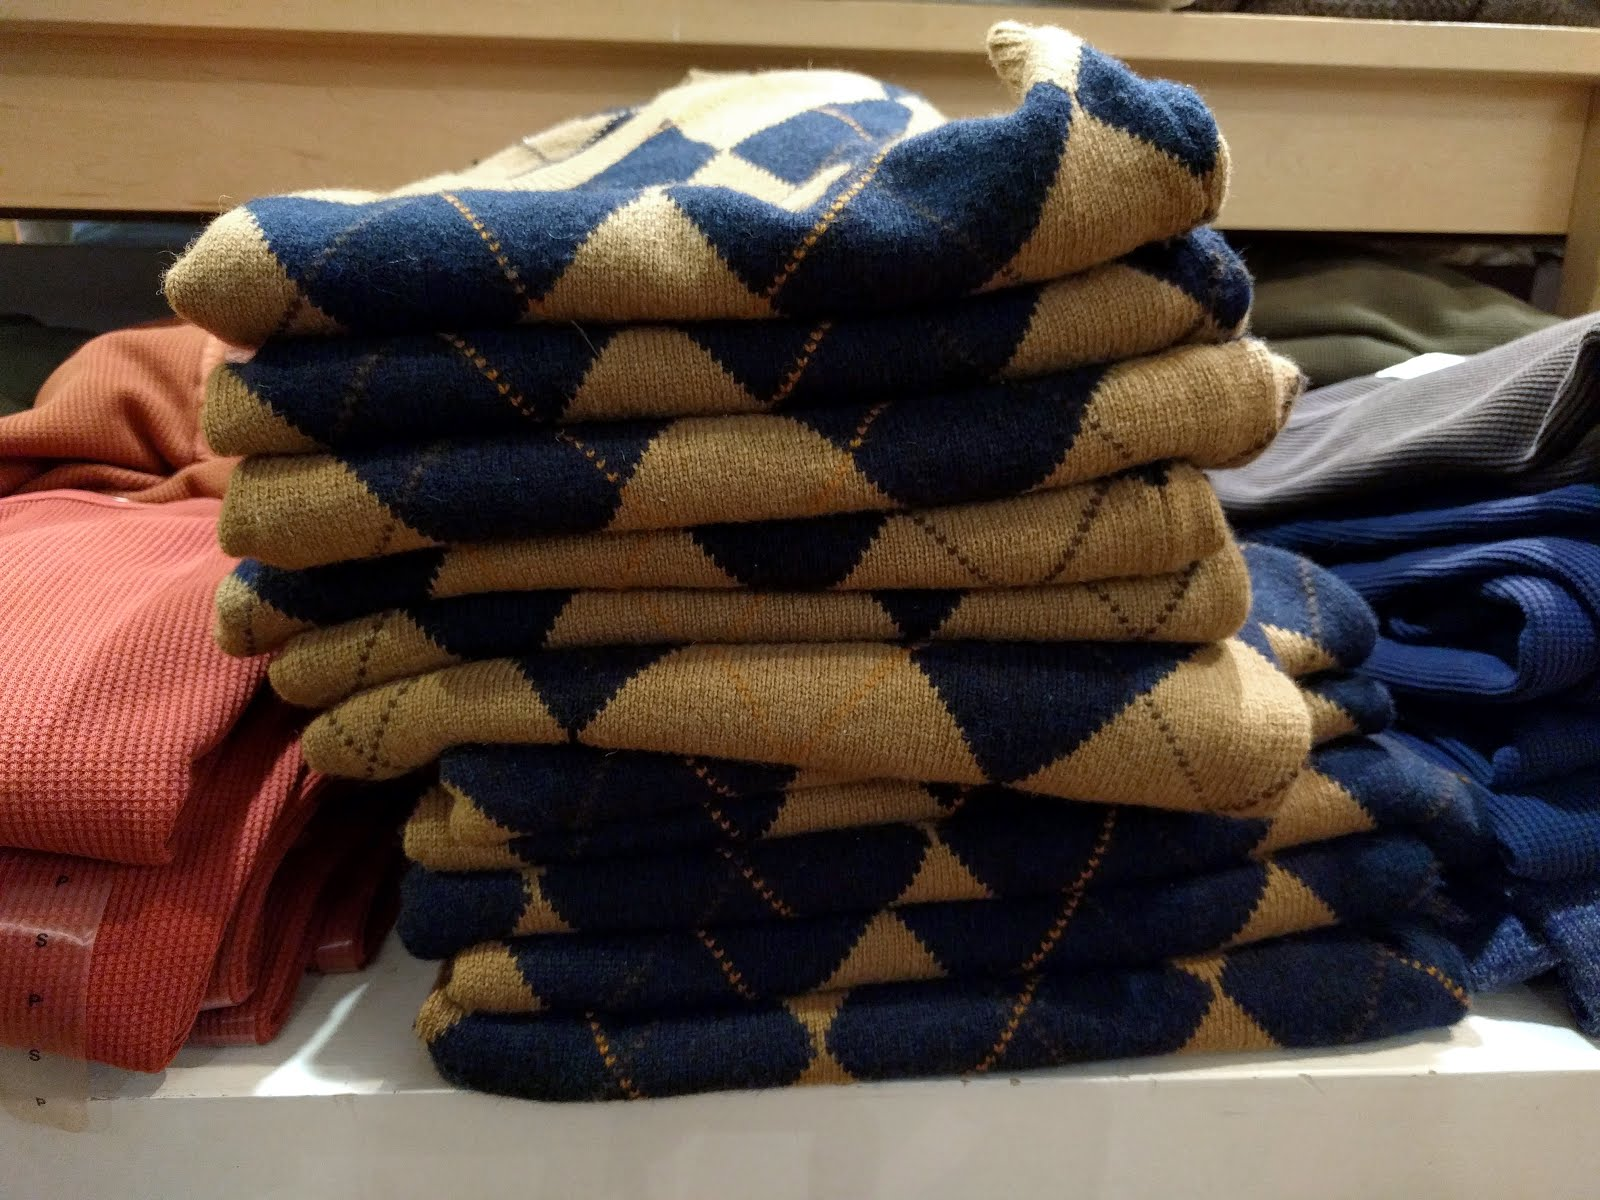 United Arrows camel and navy wool argyle sweater vests piled up on Black  Friday at the Metrotown GAP. One of my favourite pieces 5faf045ac101